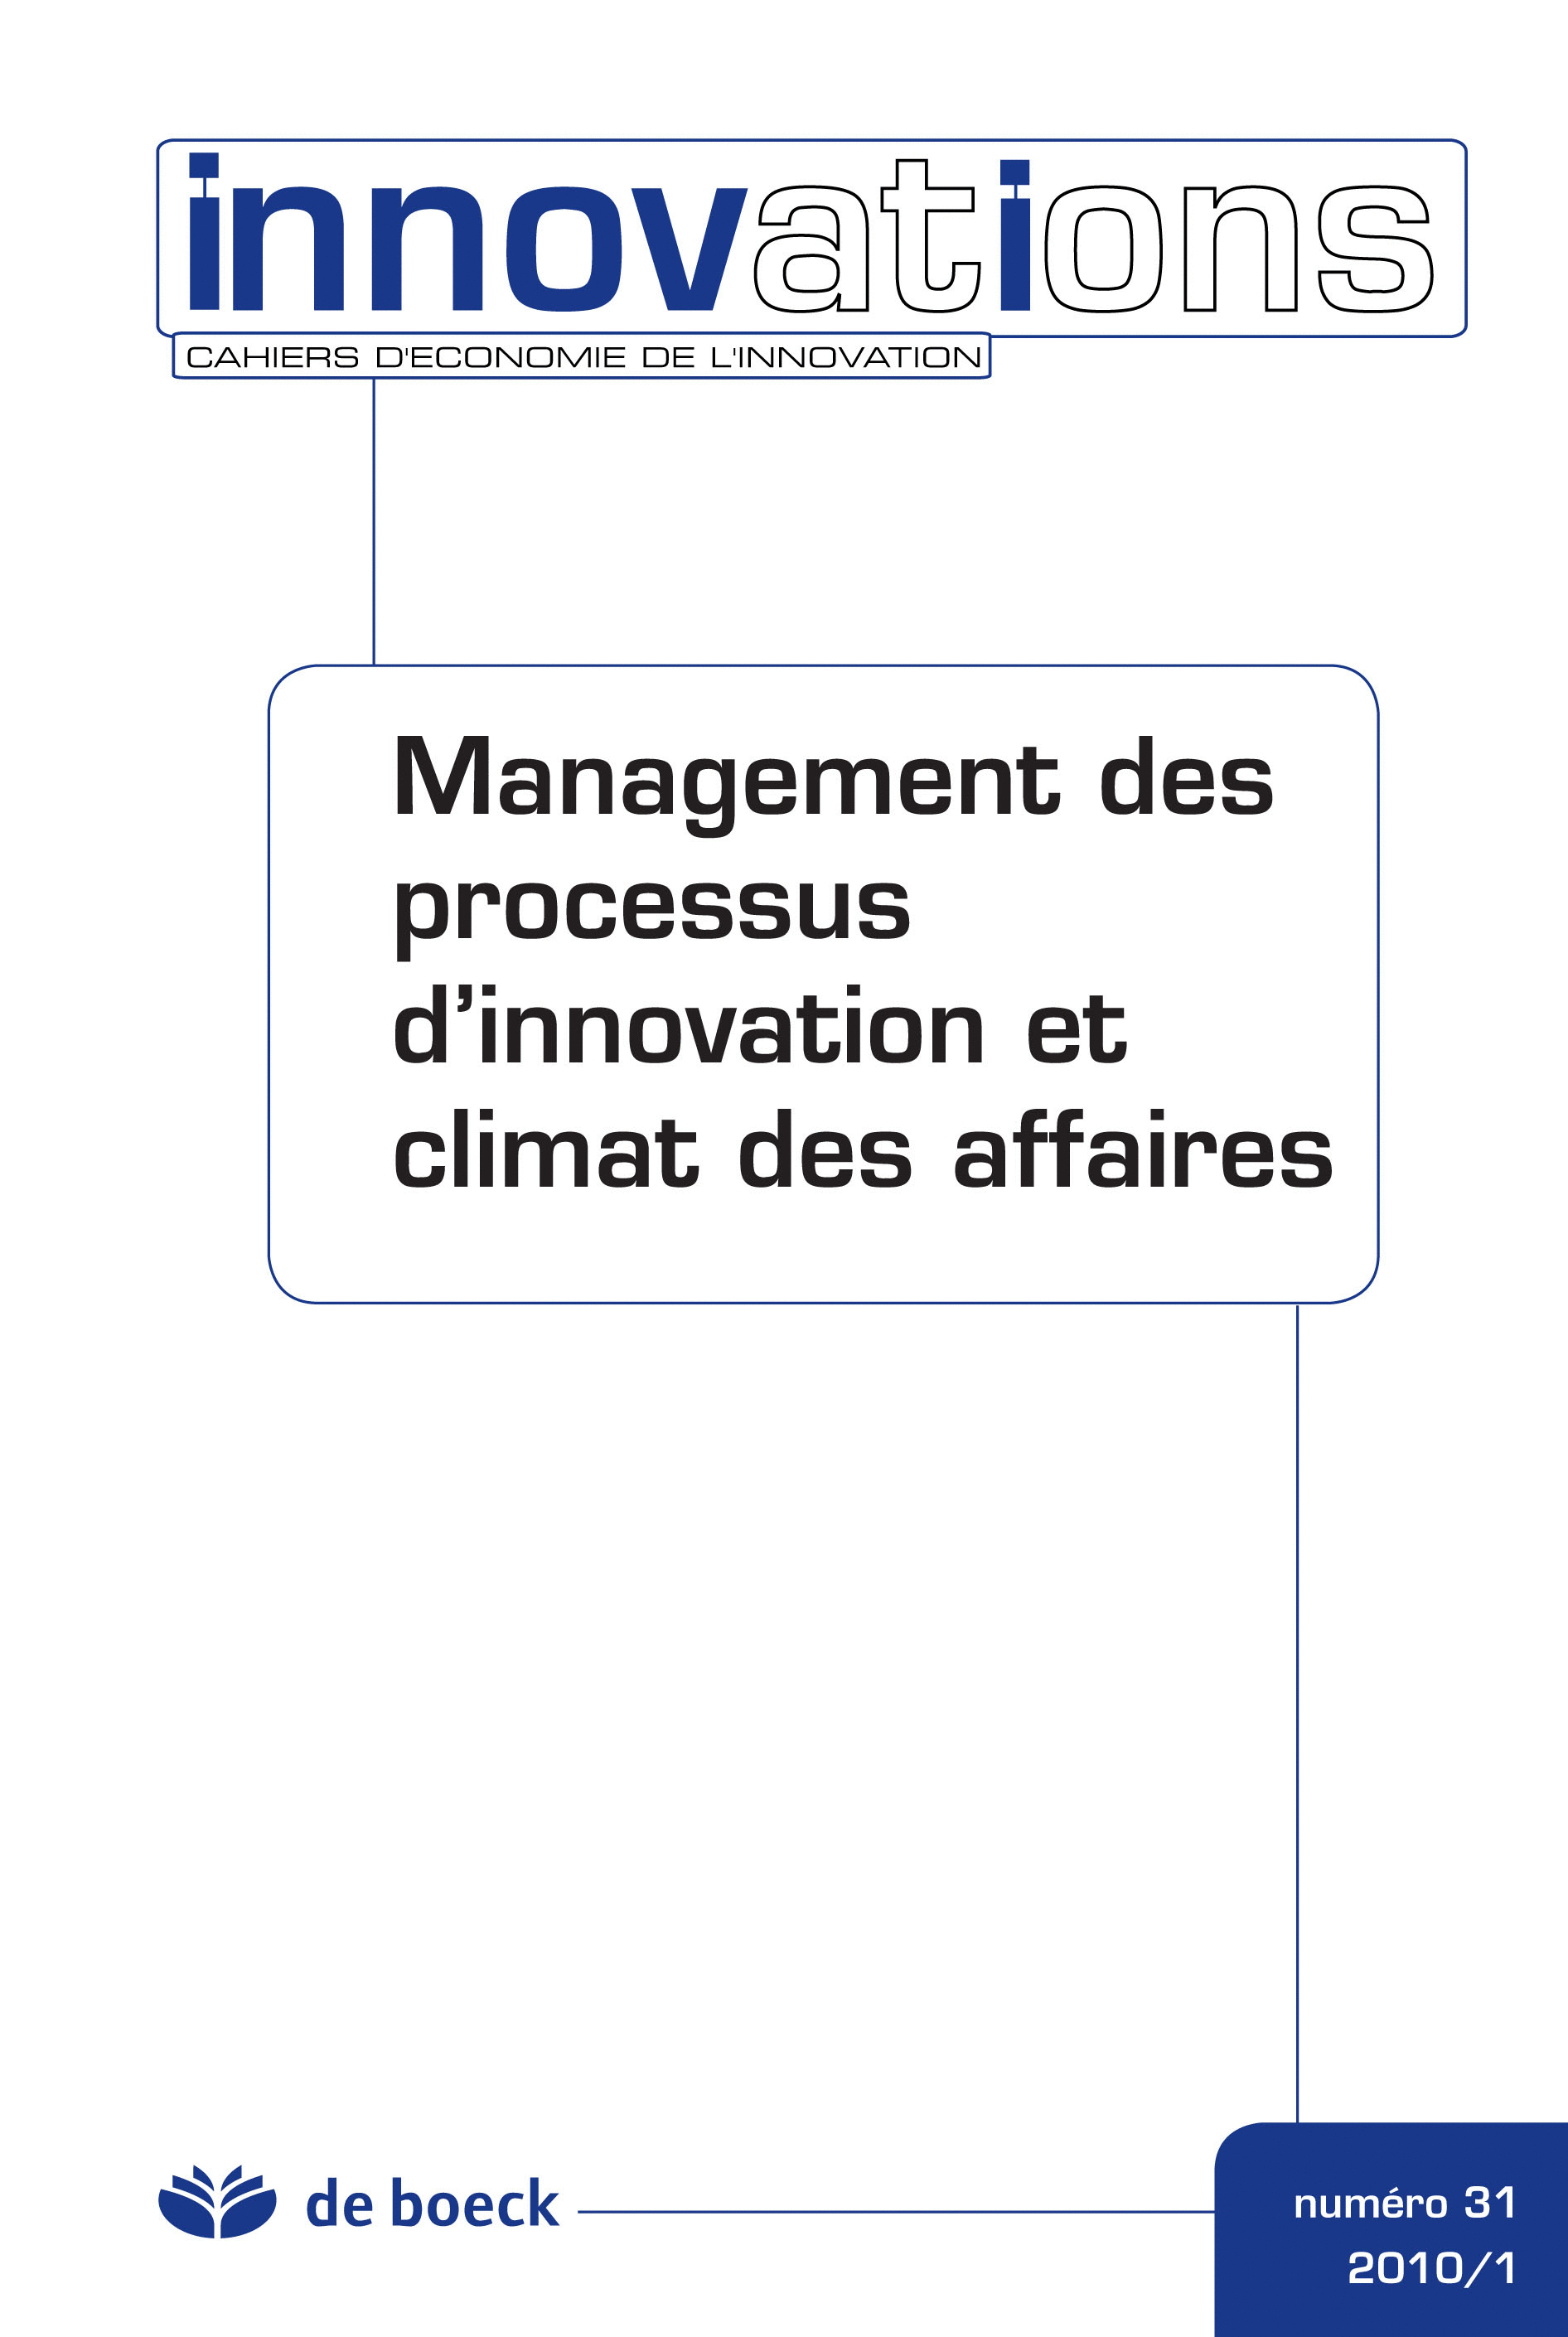 CAHIERS D'ECONOMIE DE L'INNOVATION 2010/1 N.31 MANAGEMENT PROCESSUS INNOVATION